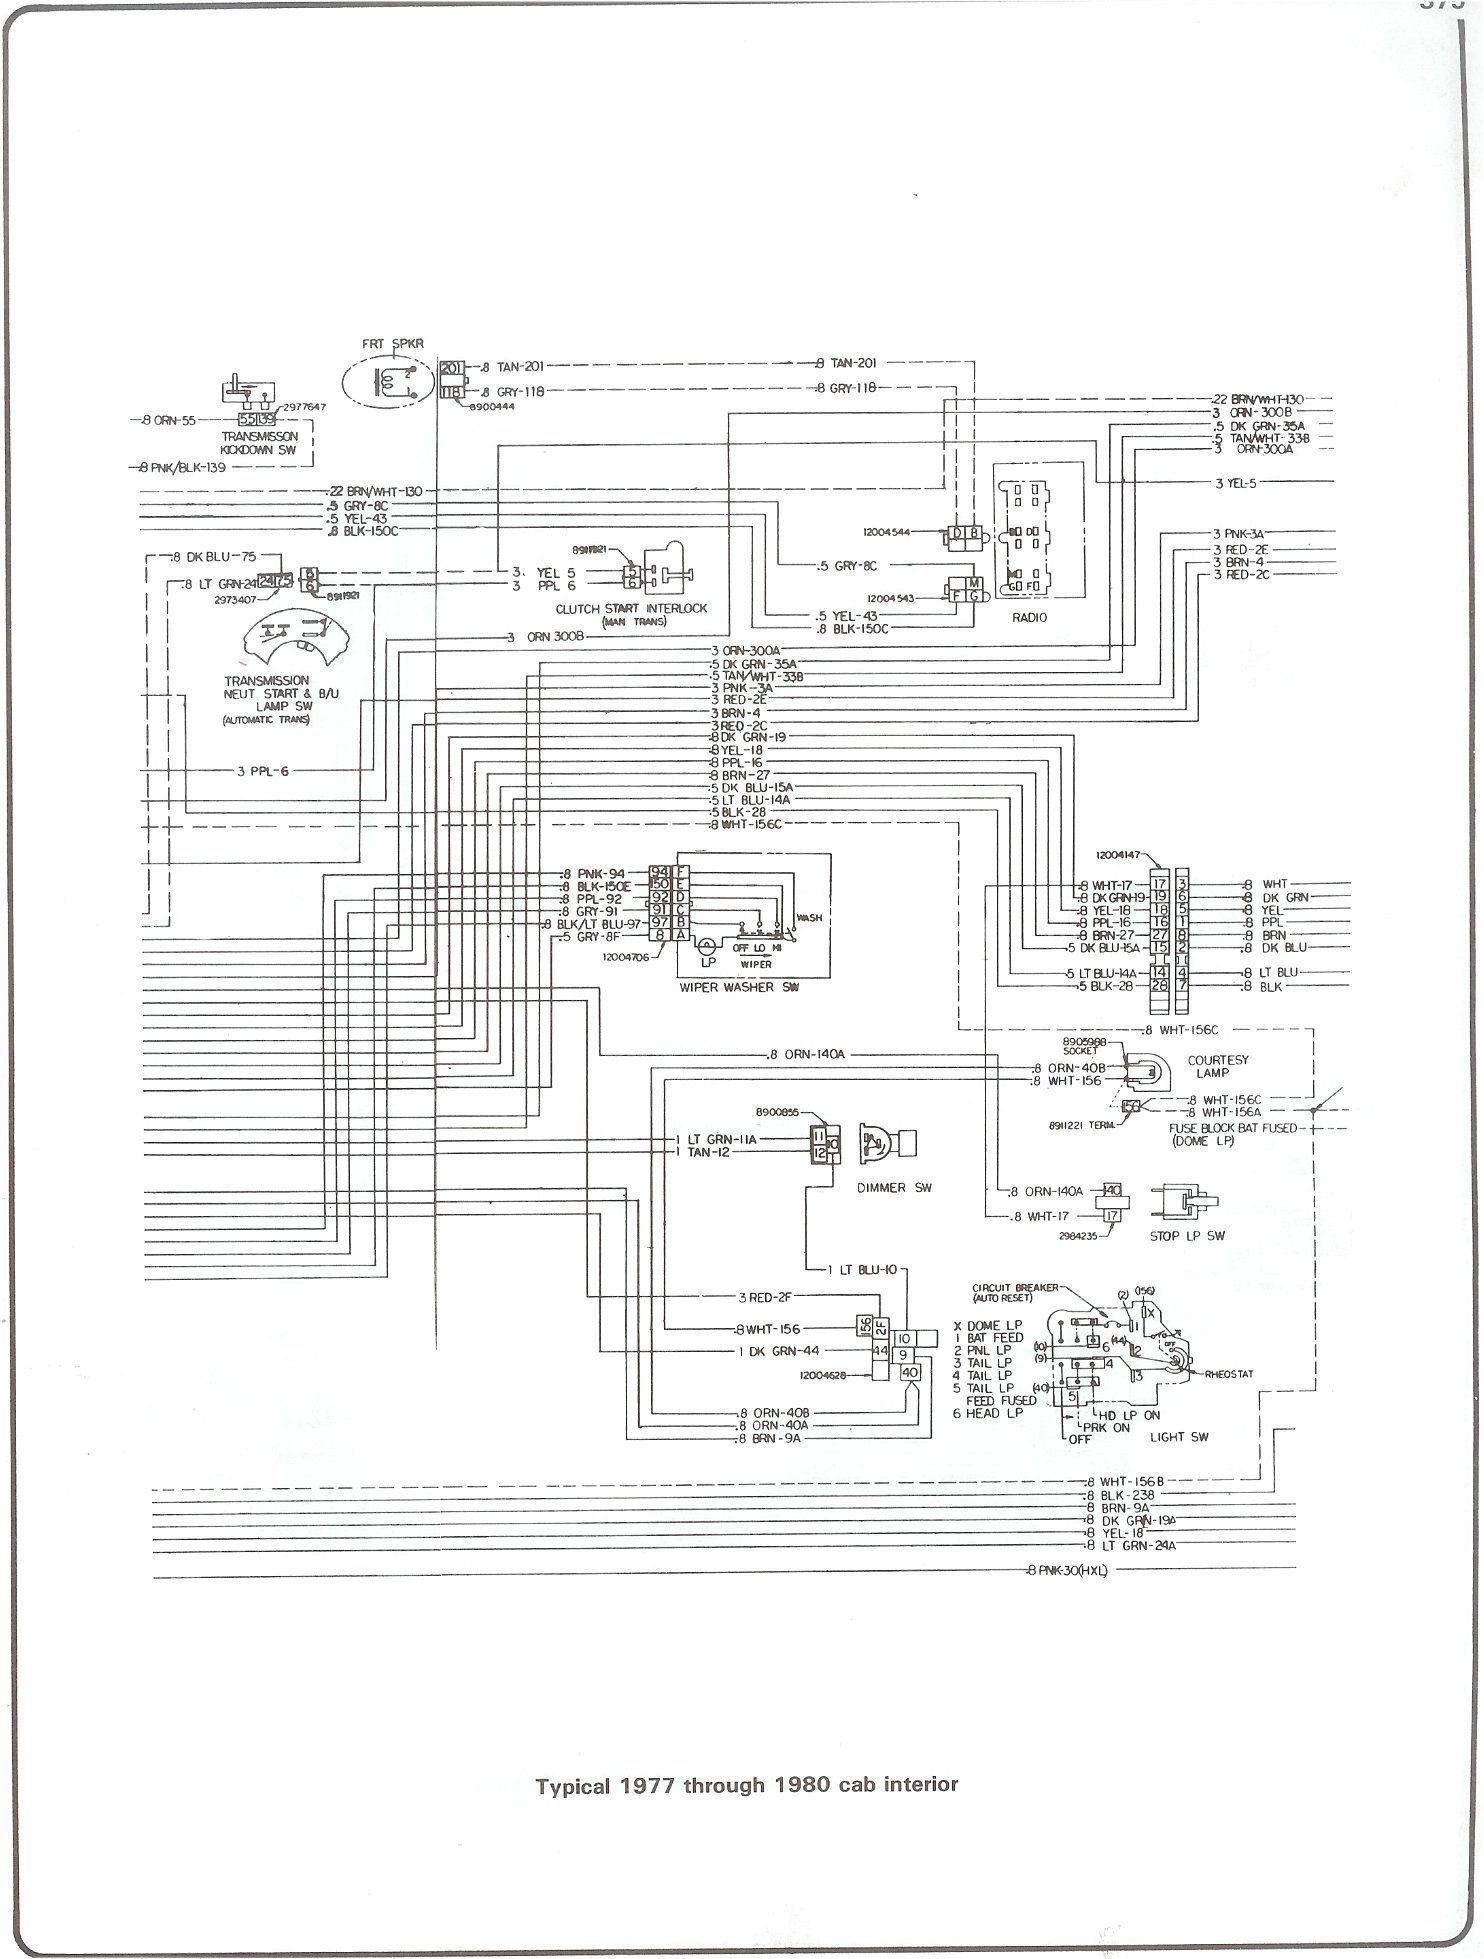 Complete 73-87 Wiring Diagrams on chevy truck horn relay, chevy blazer horn wiring, automotive horn wiring, willys horn wiring, mazda 626 horn wiring, chevy truck ignition switch, chevy truck fuel pump, mopar horn wiring, chevy truck horn repair, toyota corolla horn wiring, silverado horn wiring, chevy truck brake lights, chevy truck horn button,